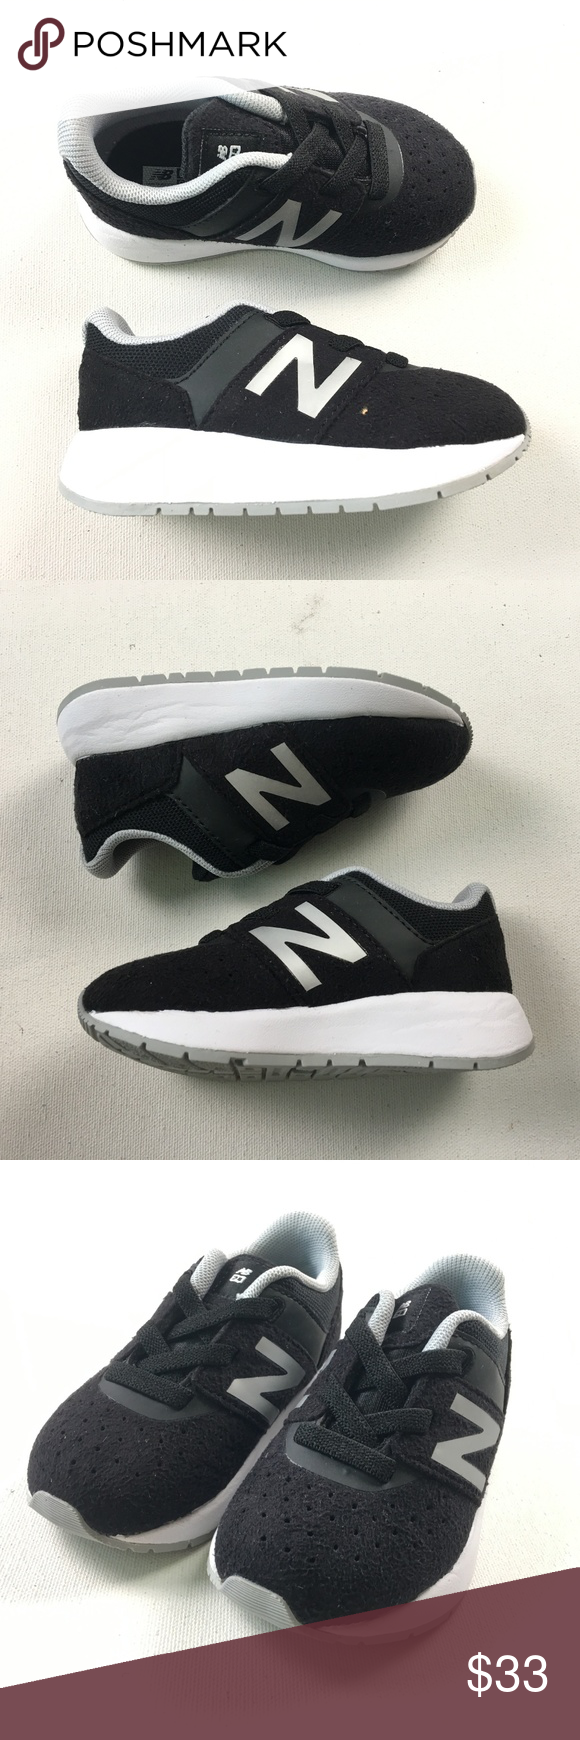 4e2f0394cccc New Balance Toddler Baby Kids KA24BSI Black White